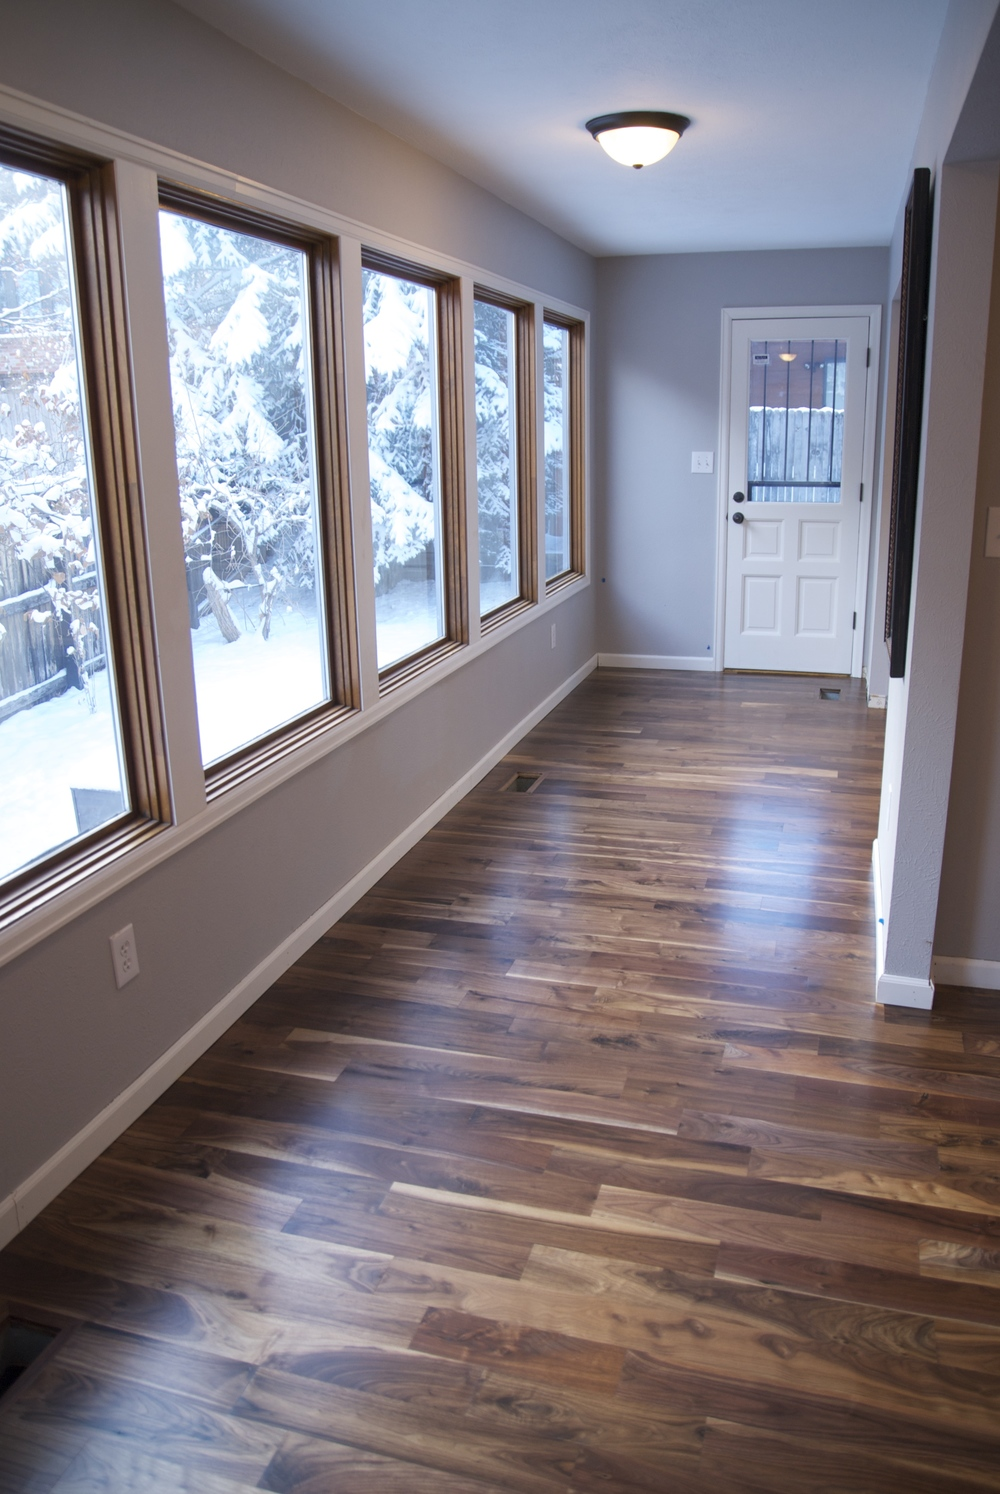 Third image of Residential Hardwood Flooring for The Ranch - Westminster by ASA Flooring